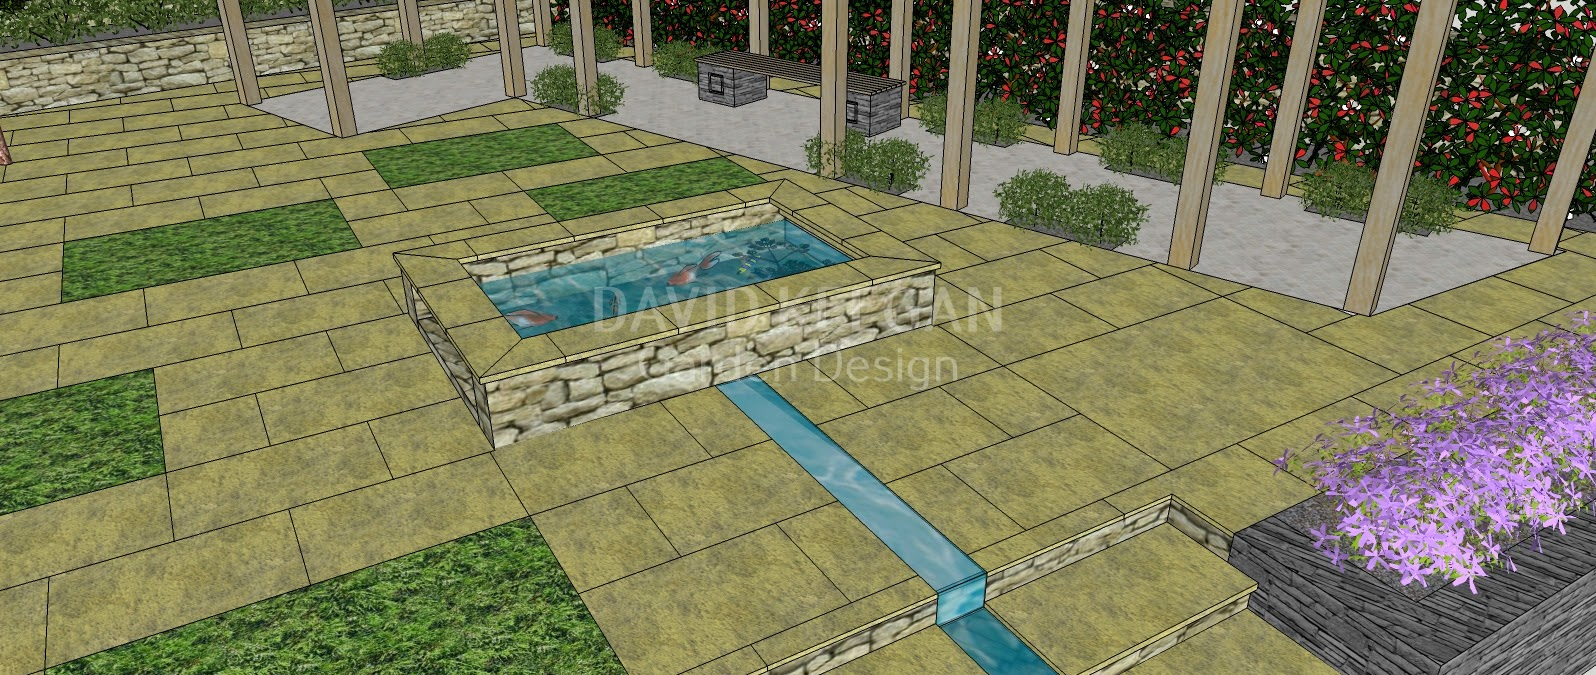 the rib cage pergola an exclusive copyrighted dk garden design original - Garden Design Kendal